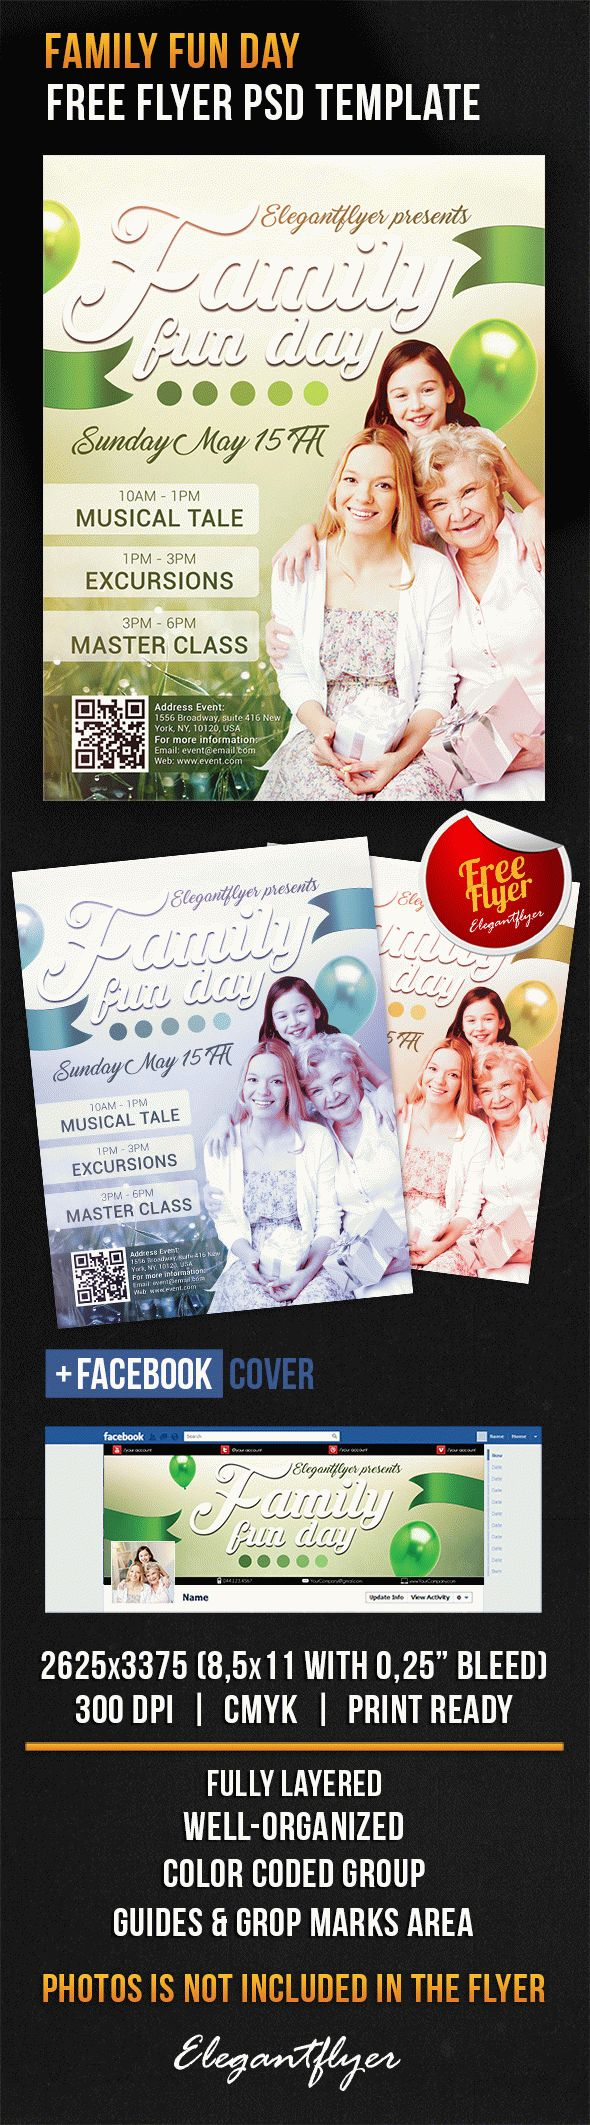 Family Fun Day – Free Flyer PSD Template